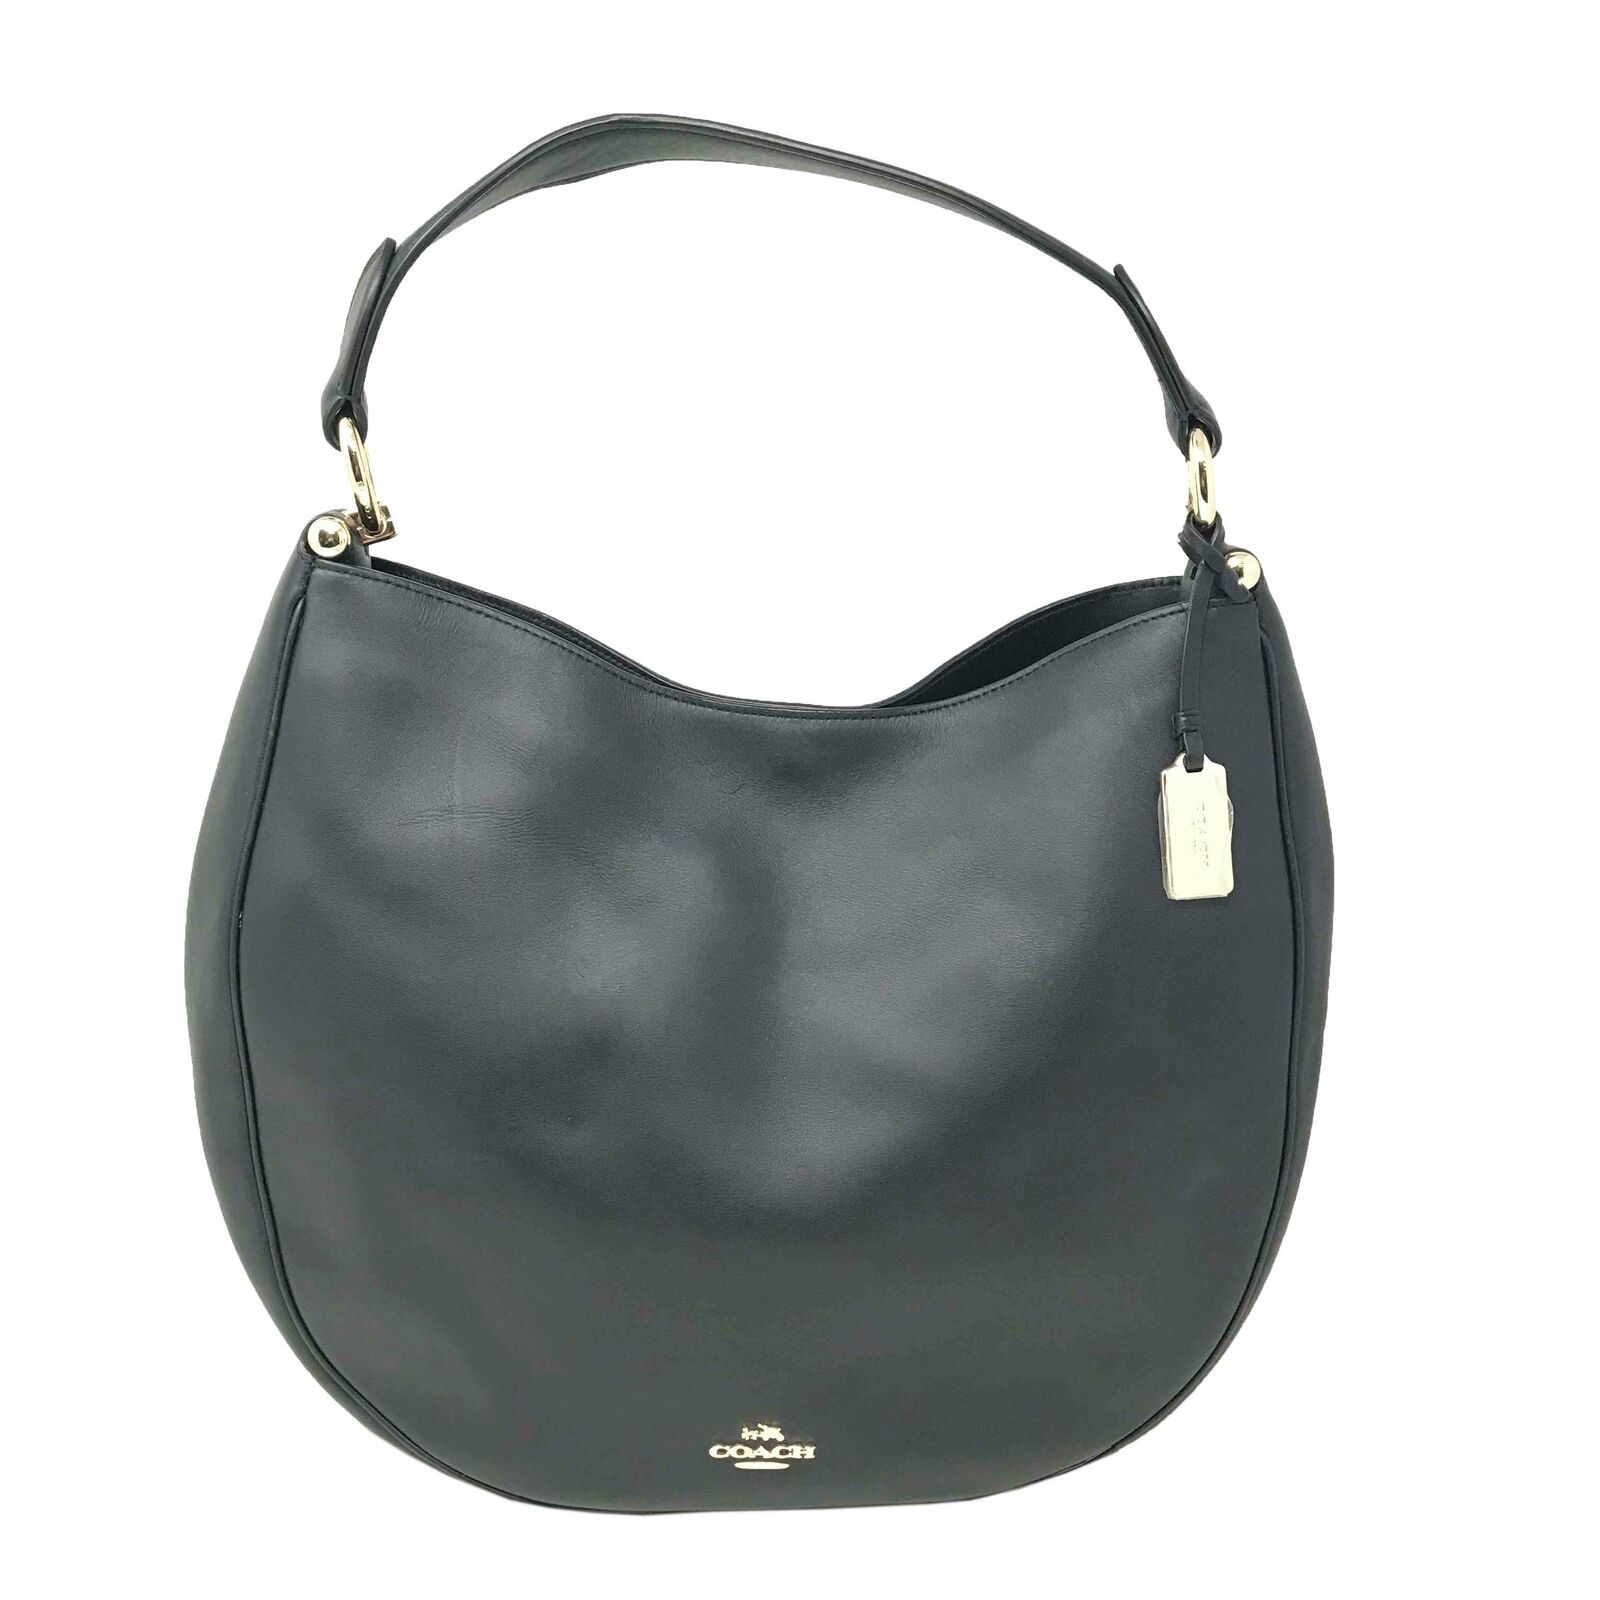 Primary image for Coach 36026 Leather Nomad Glovetanned Hobo Shoulder Ladies Bag